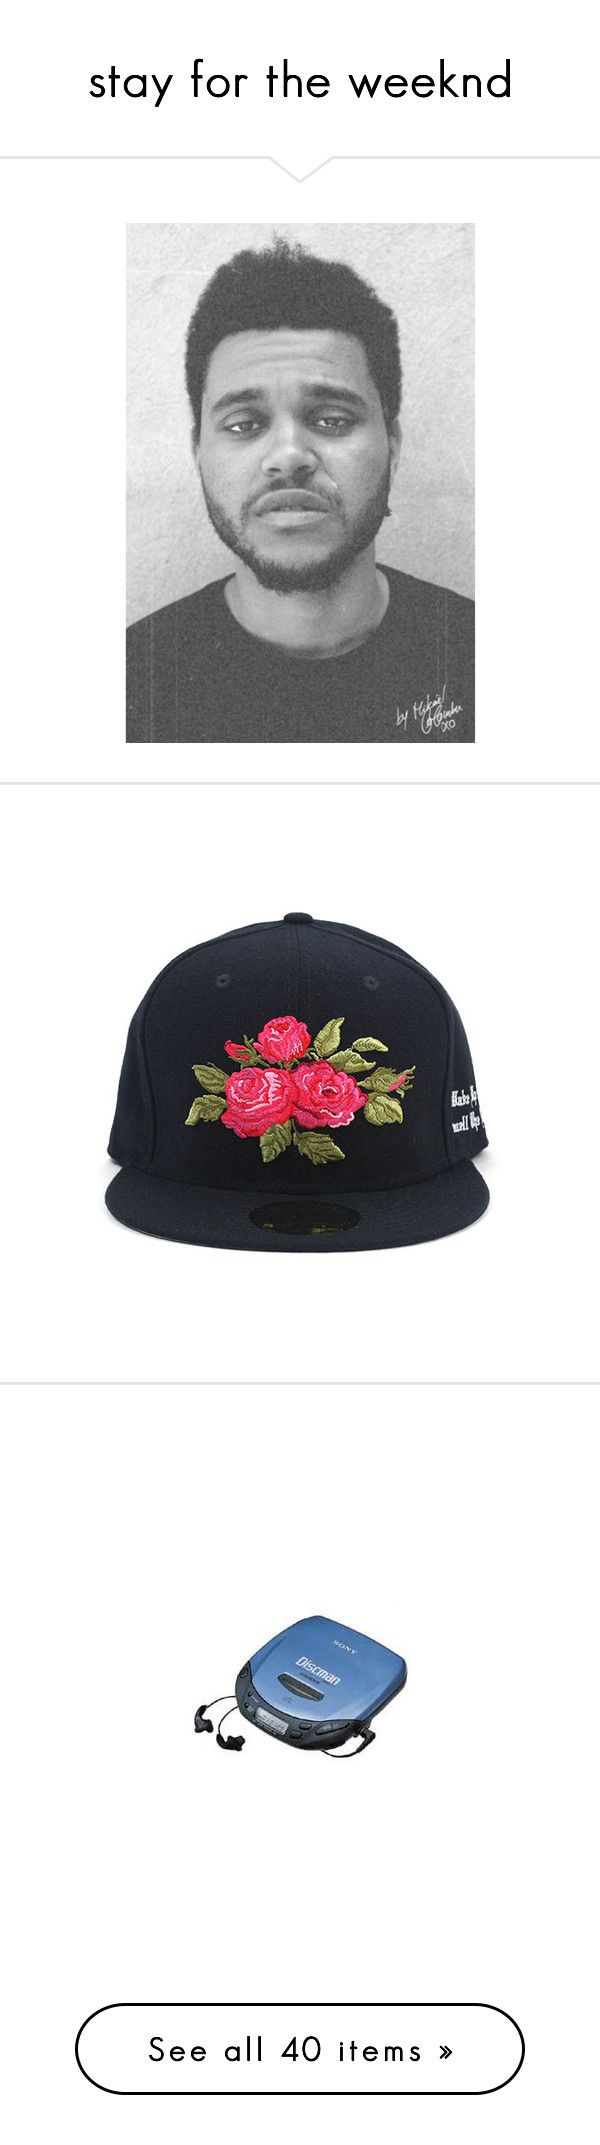 """""""stay for the weeknd"""" by yiemanja ❤ liked on Polyvore featuring people, accessories, hats, black, snapback, adjustable cap, snap back caps, black snapback, black hat and cap snapback"""